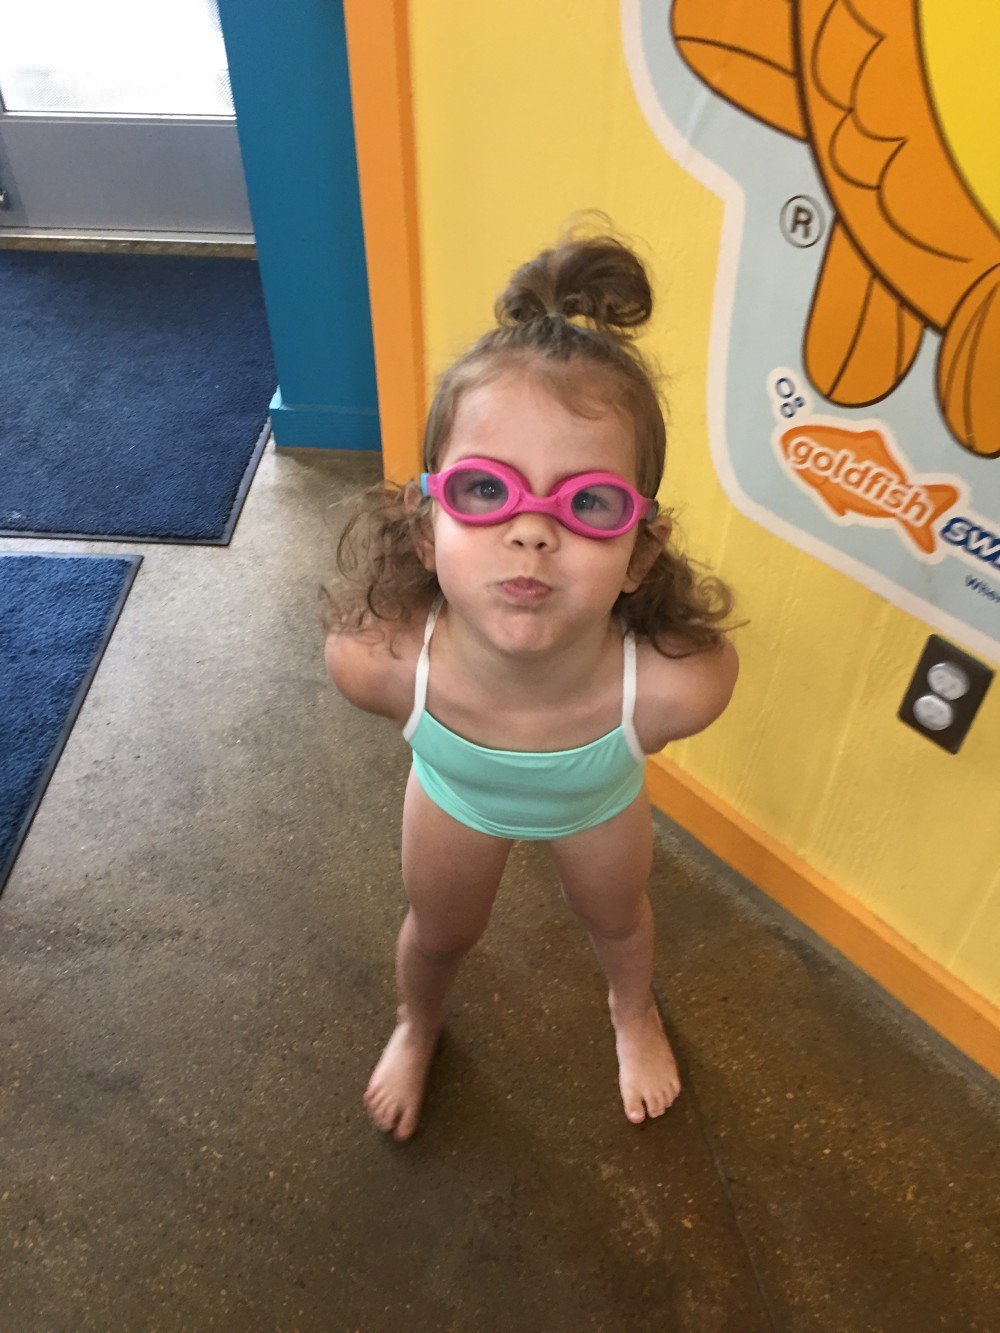 make getting to swim lessons easier